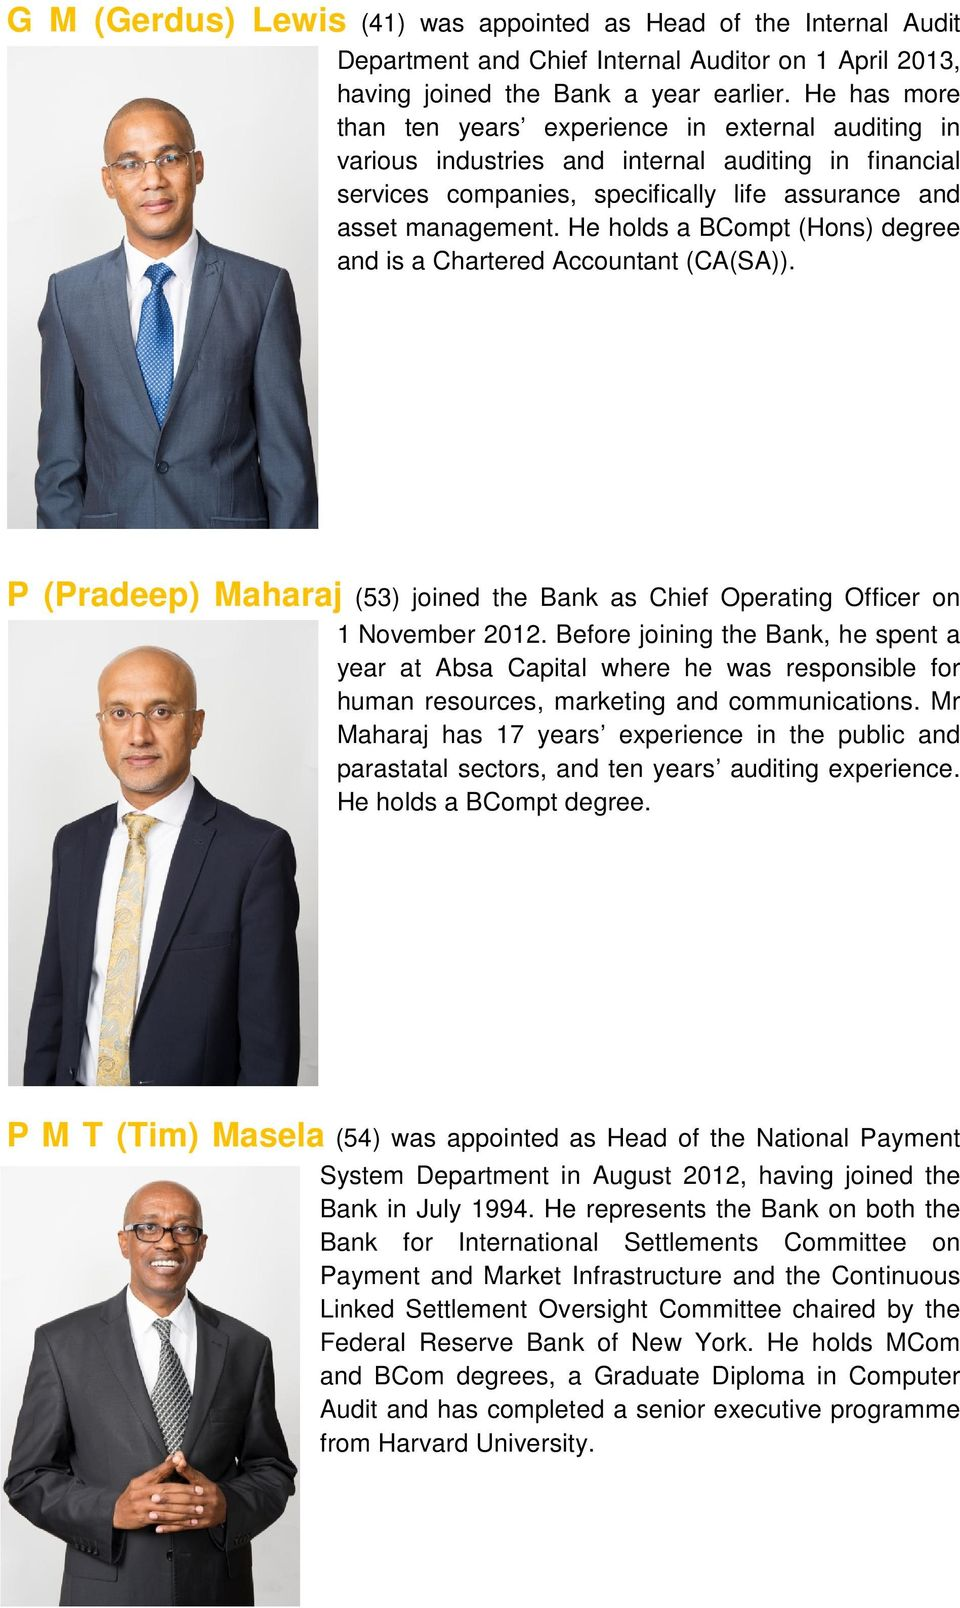 He holds a BCompt (Hons) degree and is a Chartered Accountant (CA(SA)). P (Pradeep) Maharaj (53) joined the Bank as Chief Operating Officer on 1 November 2012.